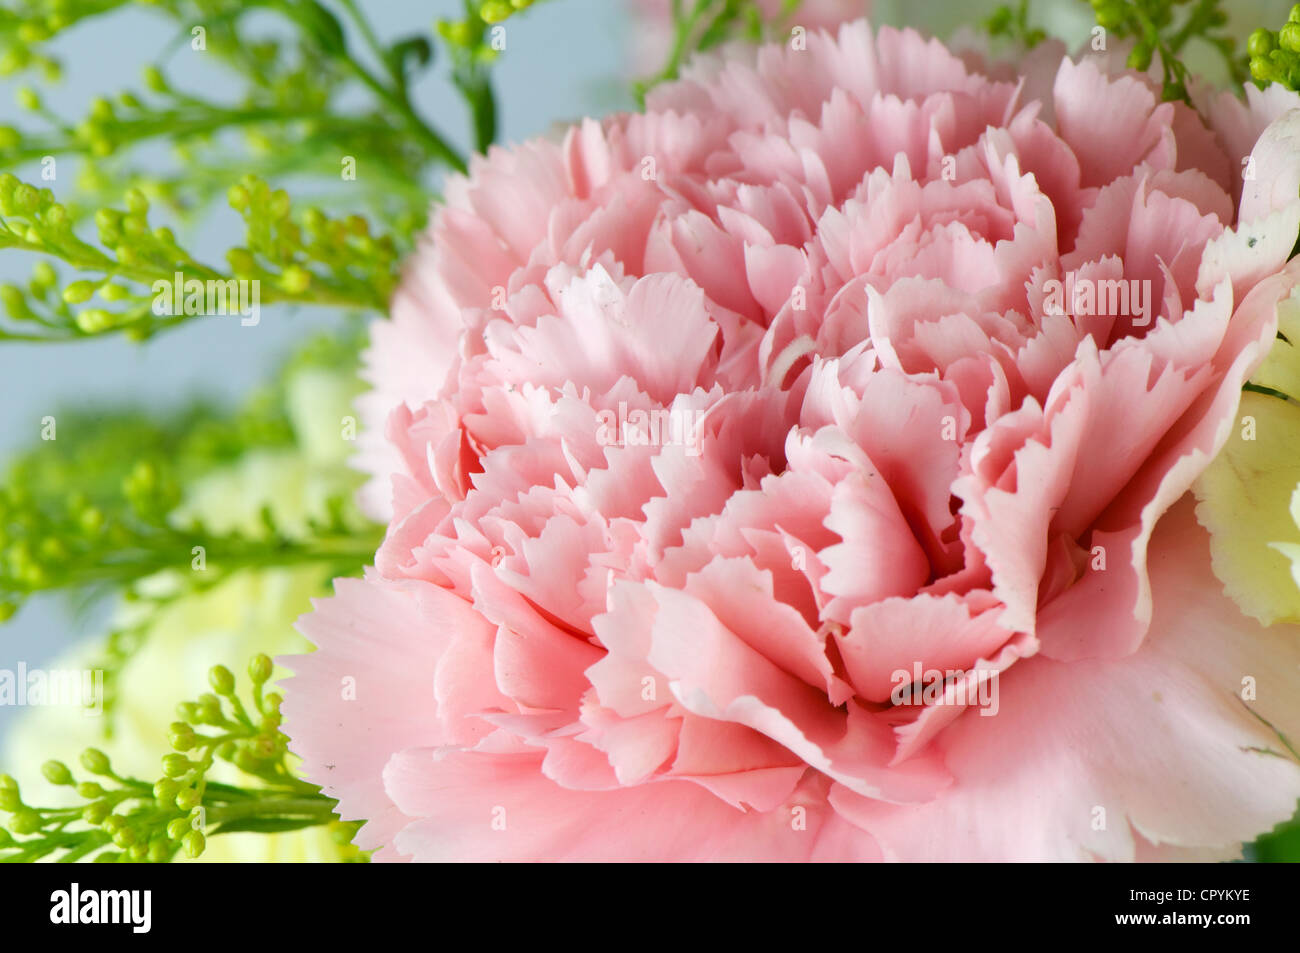 Red Rose And Gypsophila Stock Photos & Red Rose And Gypsophila Stock ...